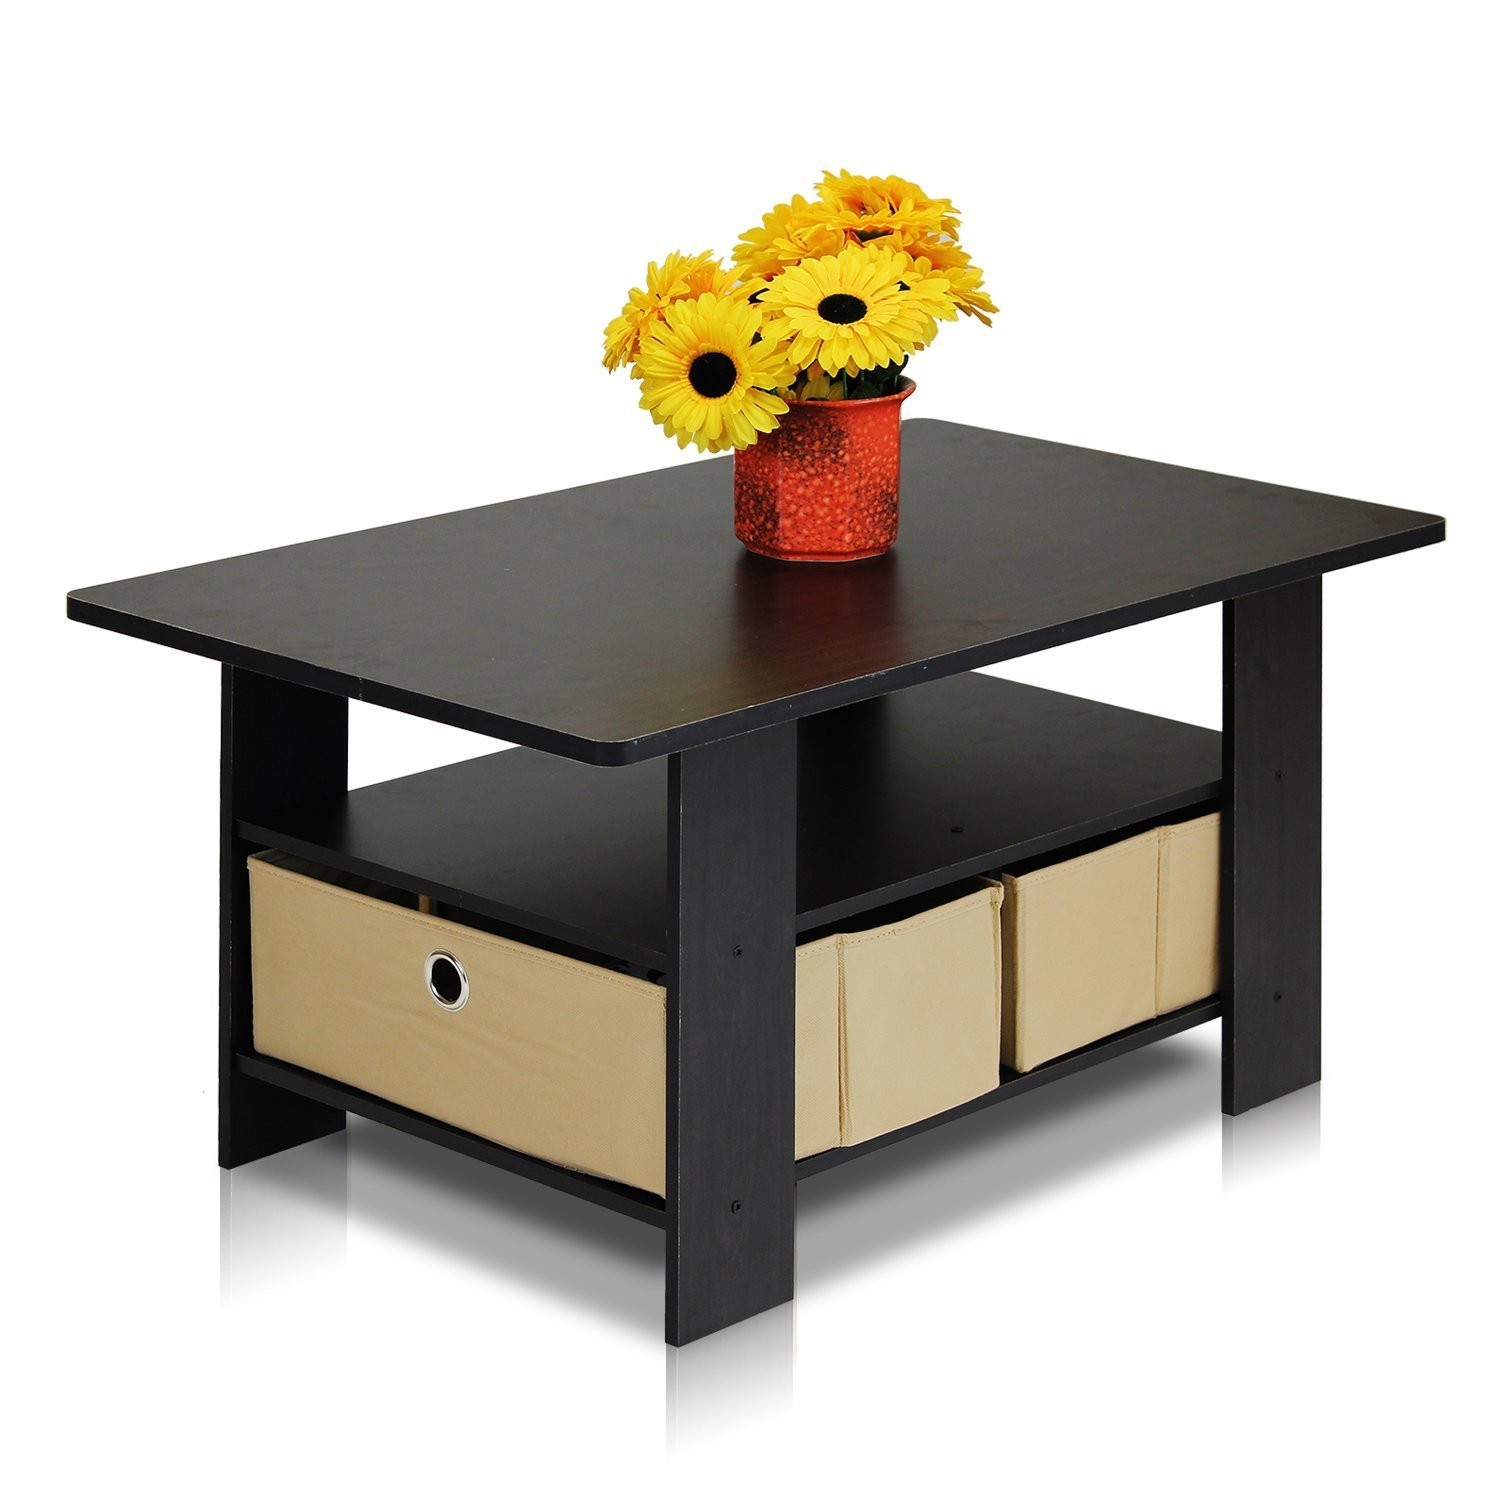 Space Saving Coffee Tables Space Saver Coffee Table With Bins Espresso Brown